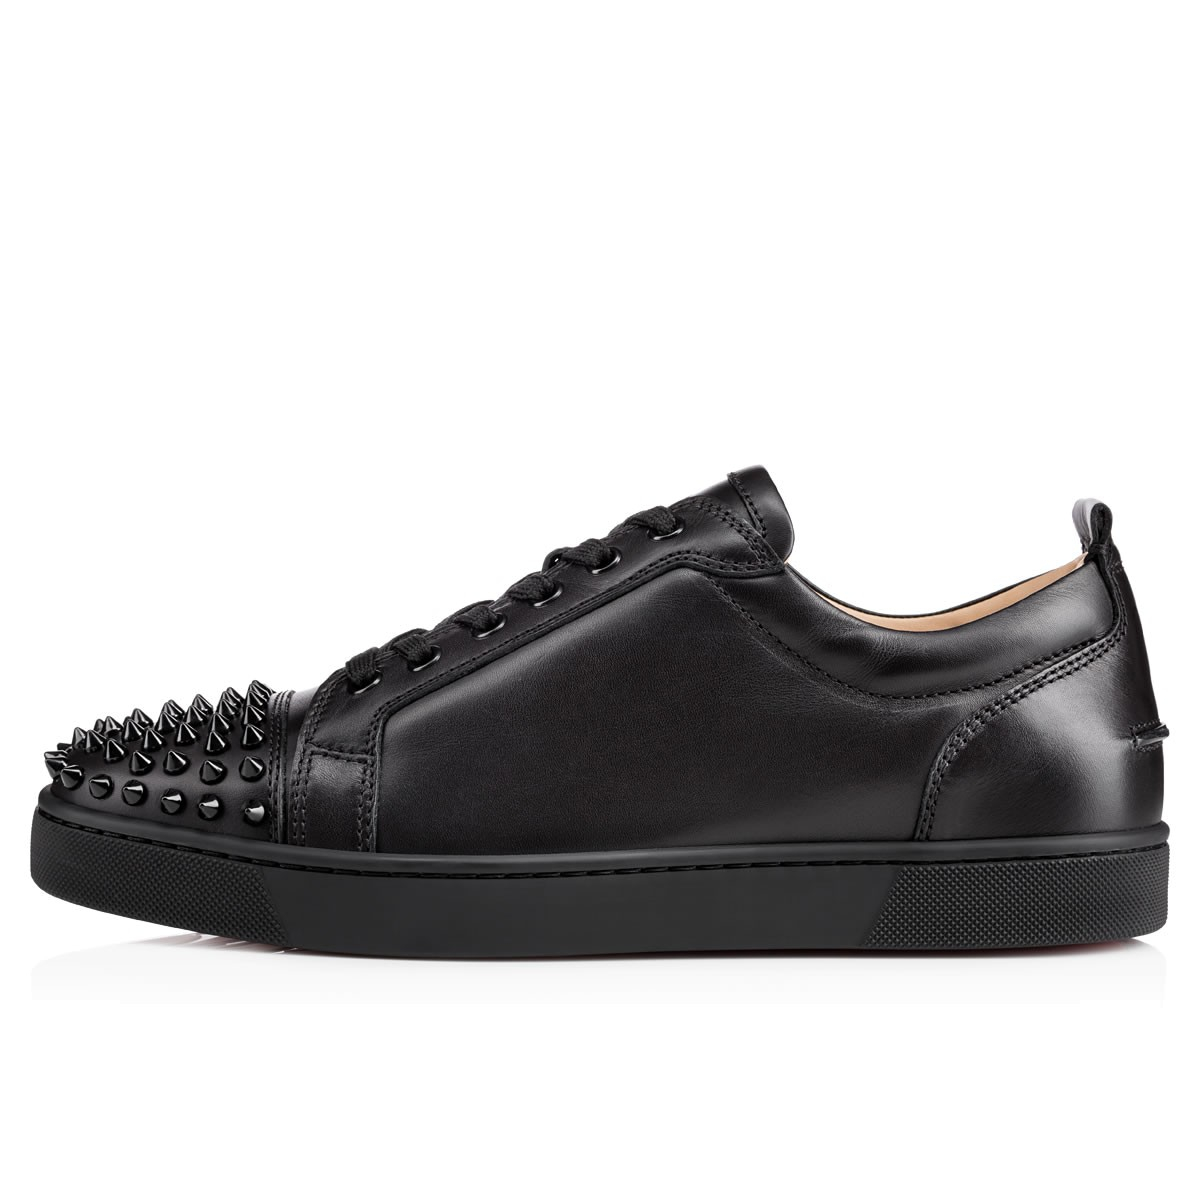 Lyst - Christian louboutin Louis Junior Spikes Leather ...